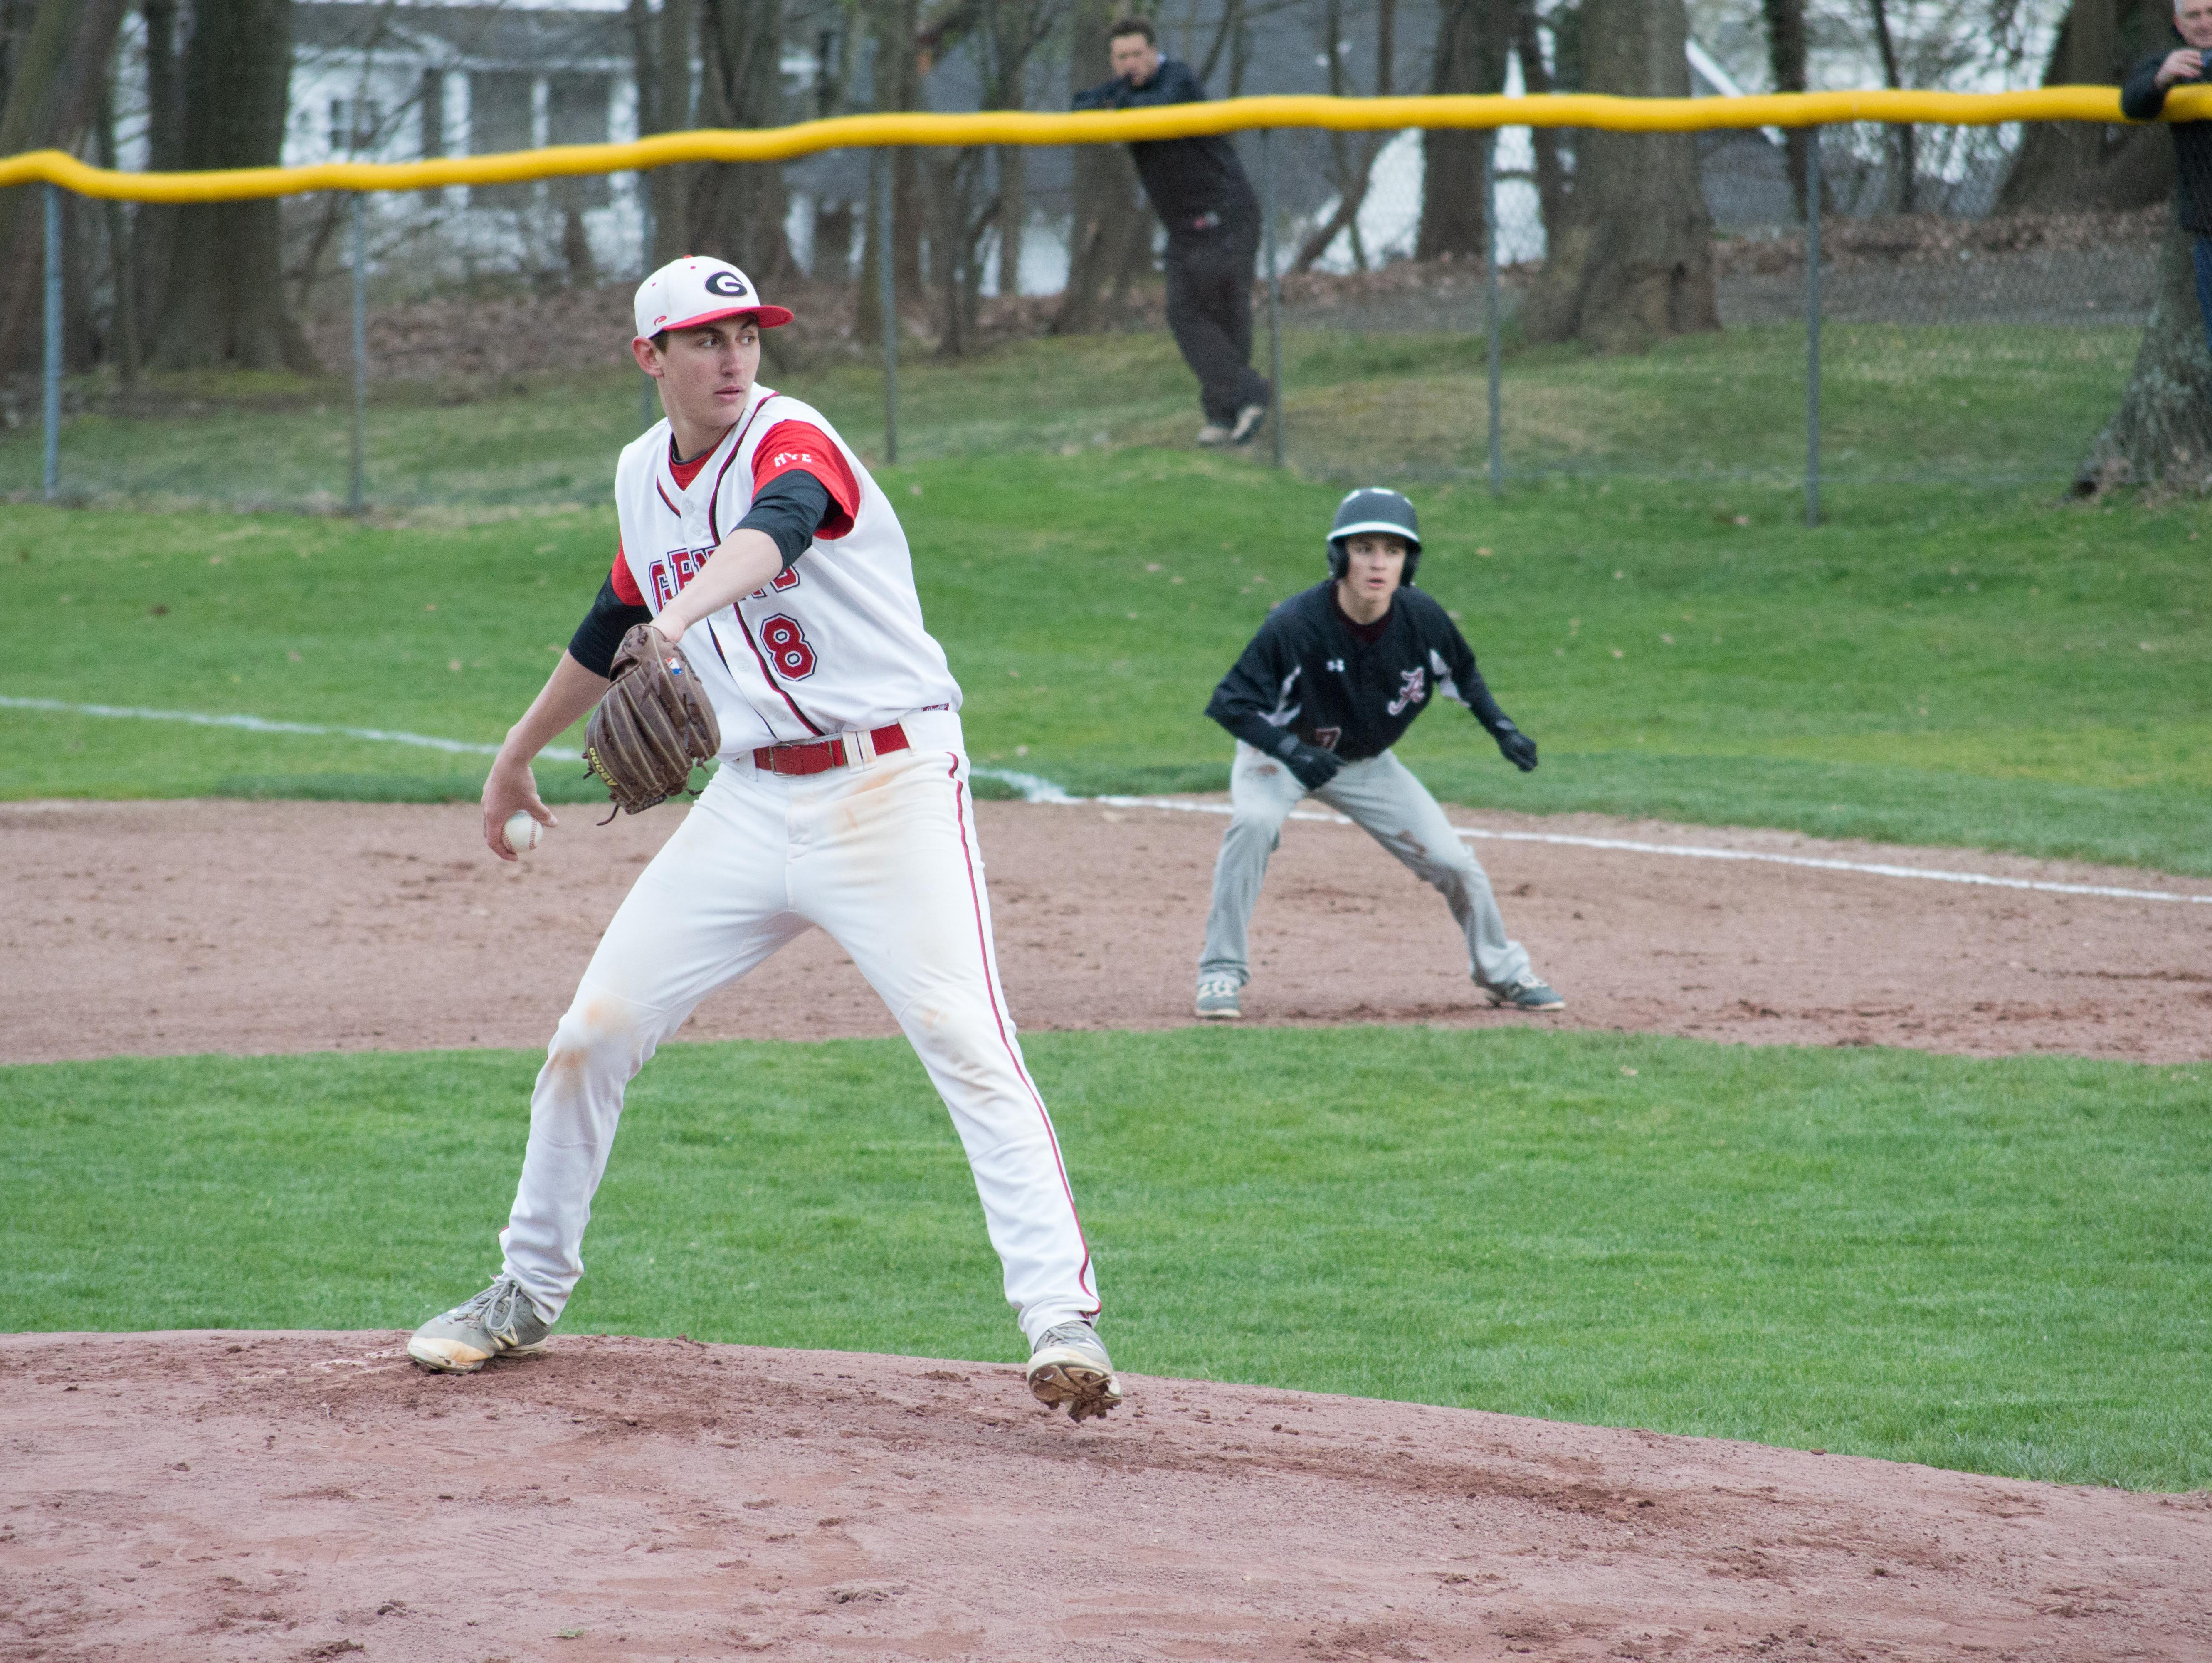 Rye pitcher George Kirby delivers a pitch in the first inning of a game against Albertus Magnus at Disbrow Park in Rye on April 8, 2016.